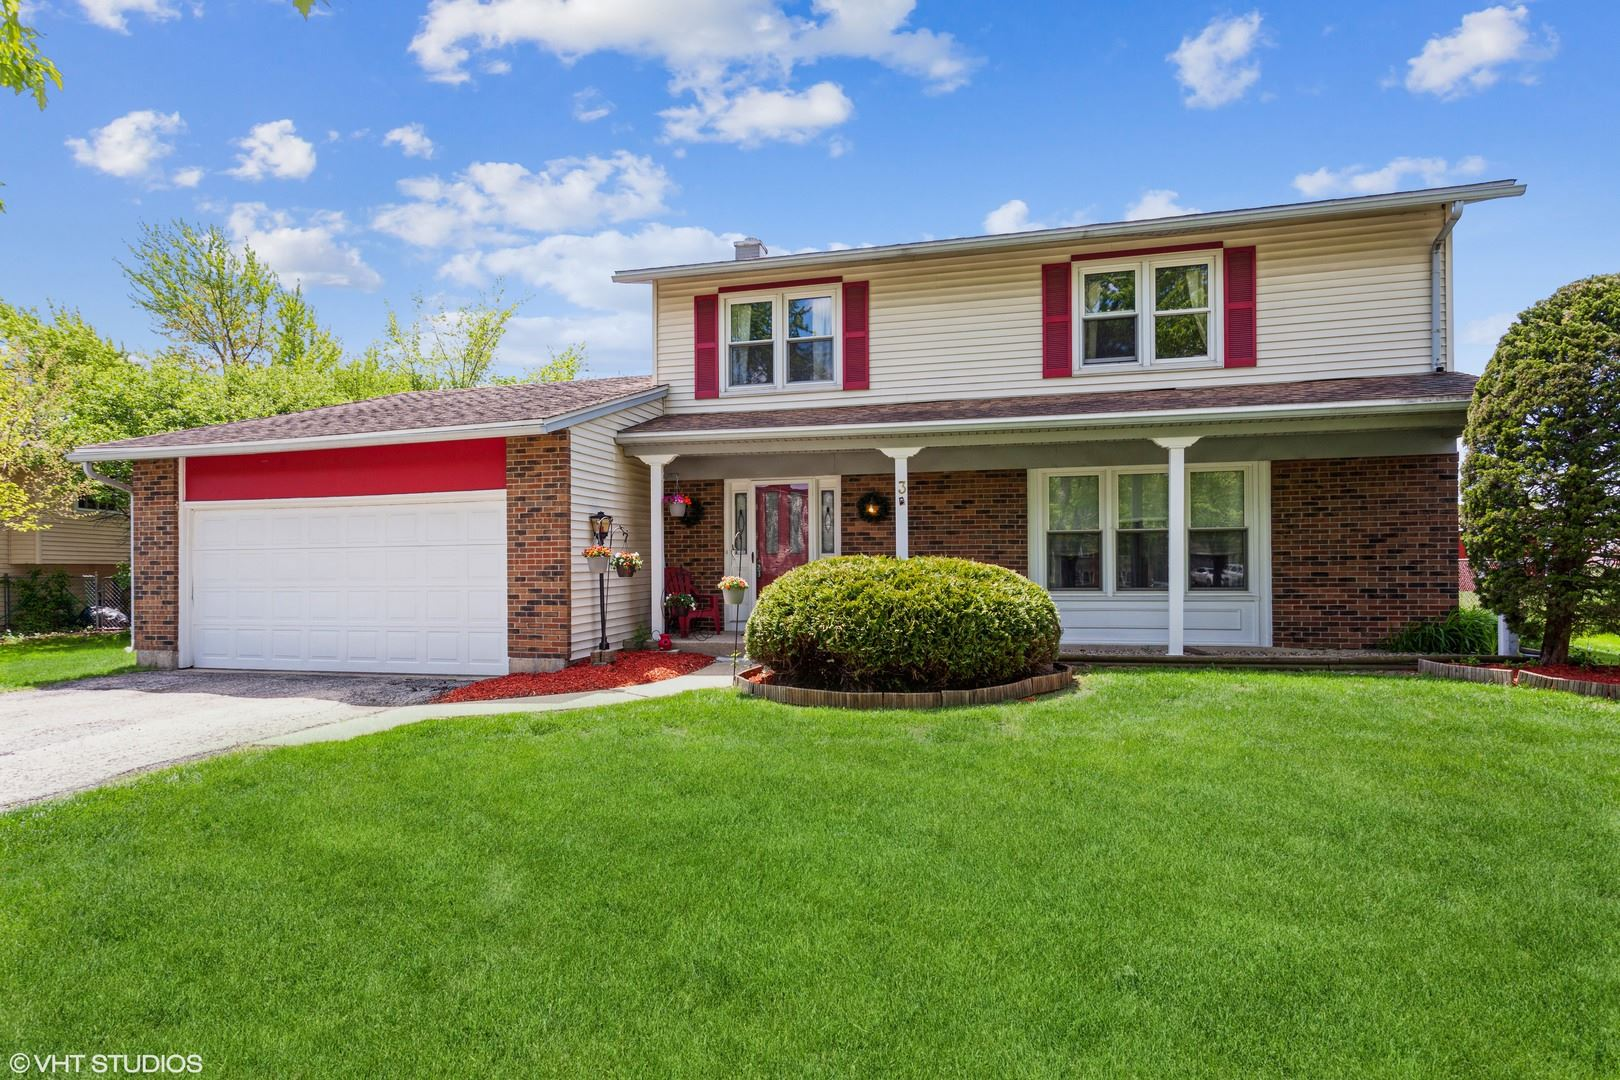 Photo of 3 Purchase Court, Bolingbrook, IL 60440 (MLS # 11124252)